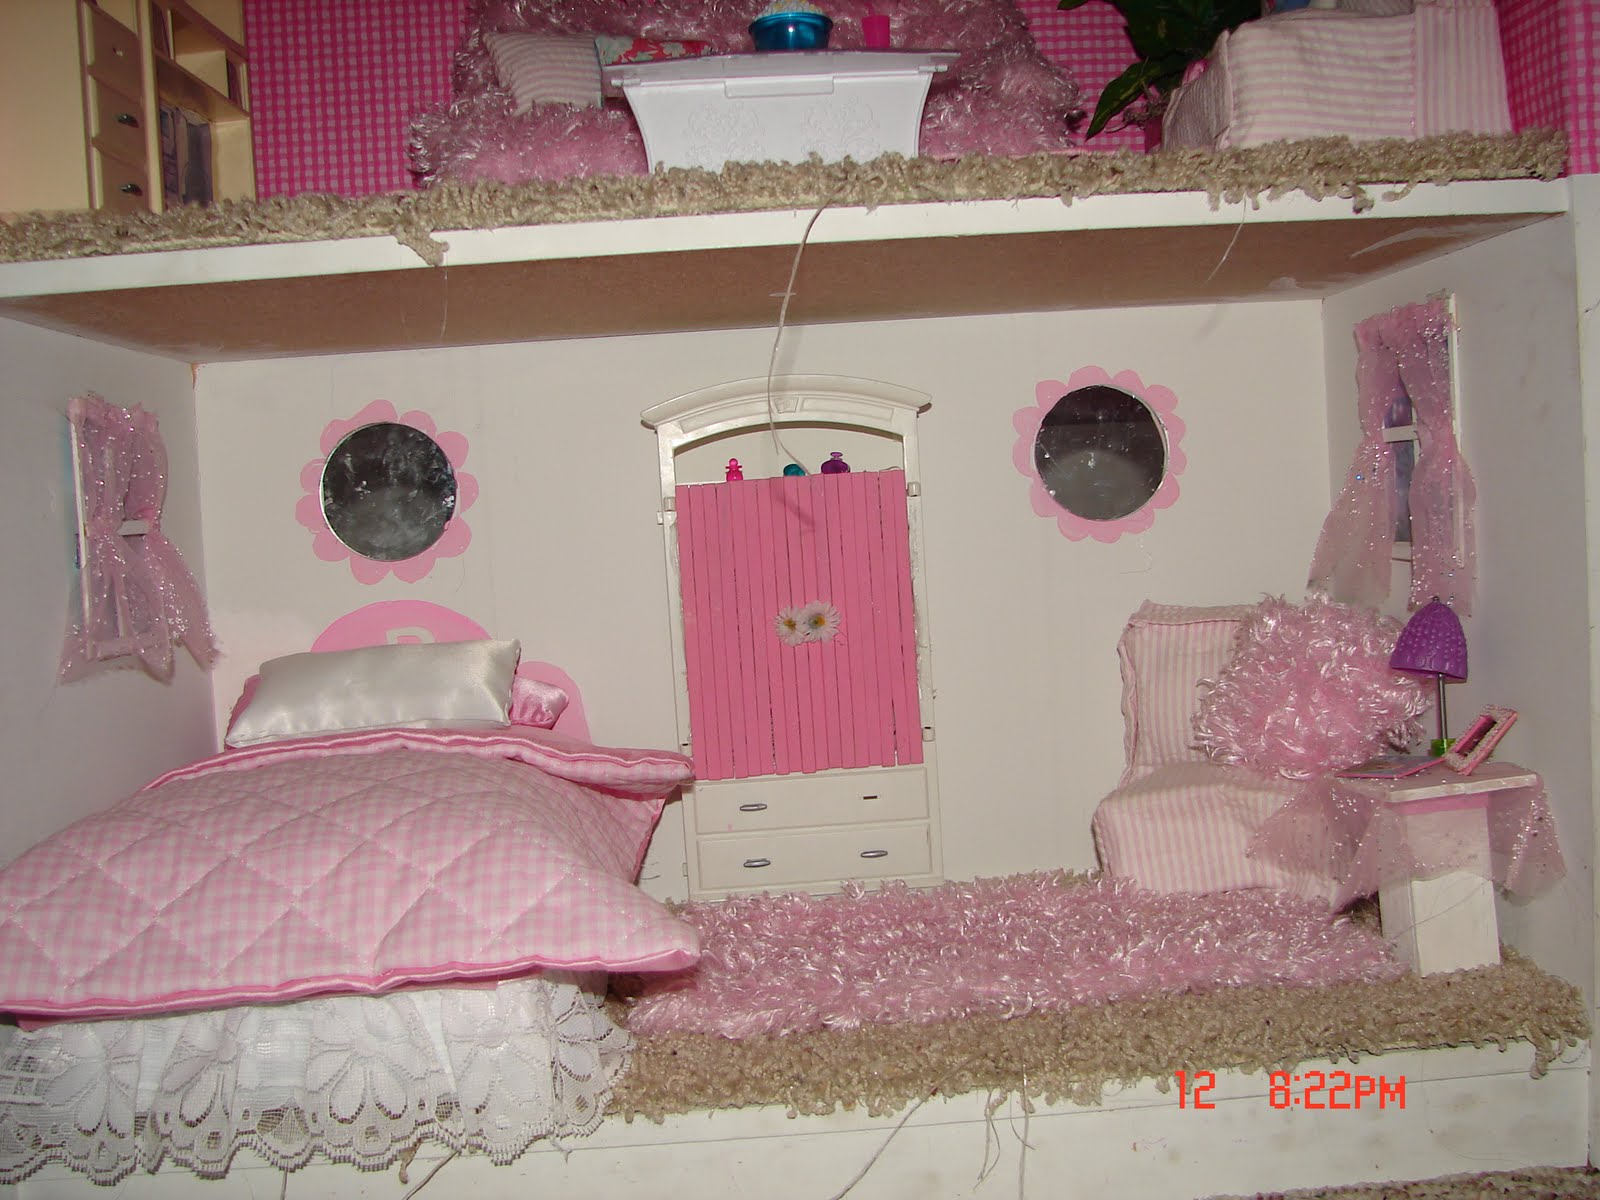 Make Your Own Barbie Furniture Property Adorable Diy Barbie House From A Shelf  A Girl And A Glue Gun Review